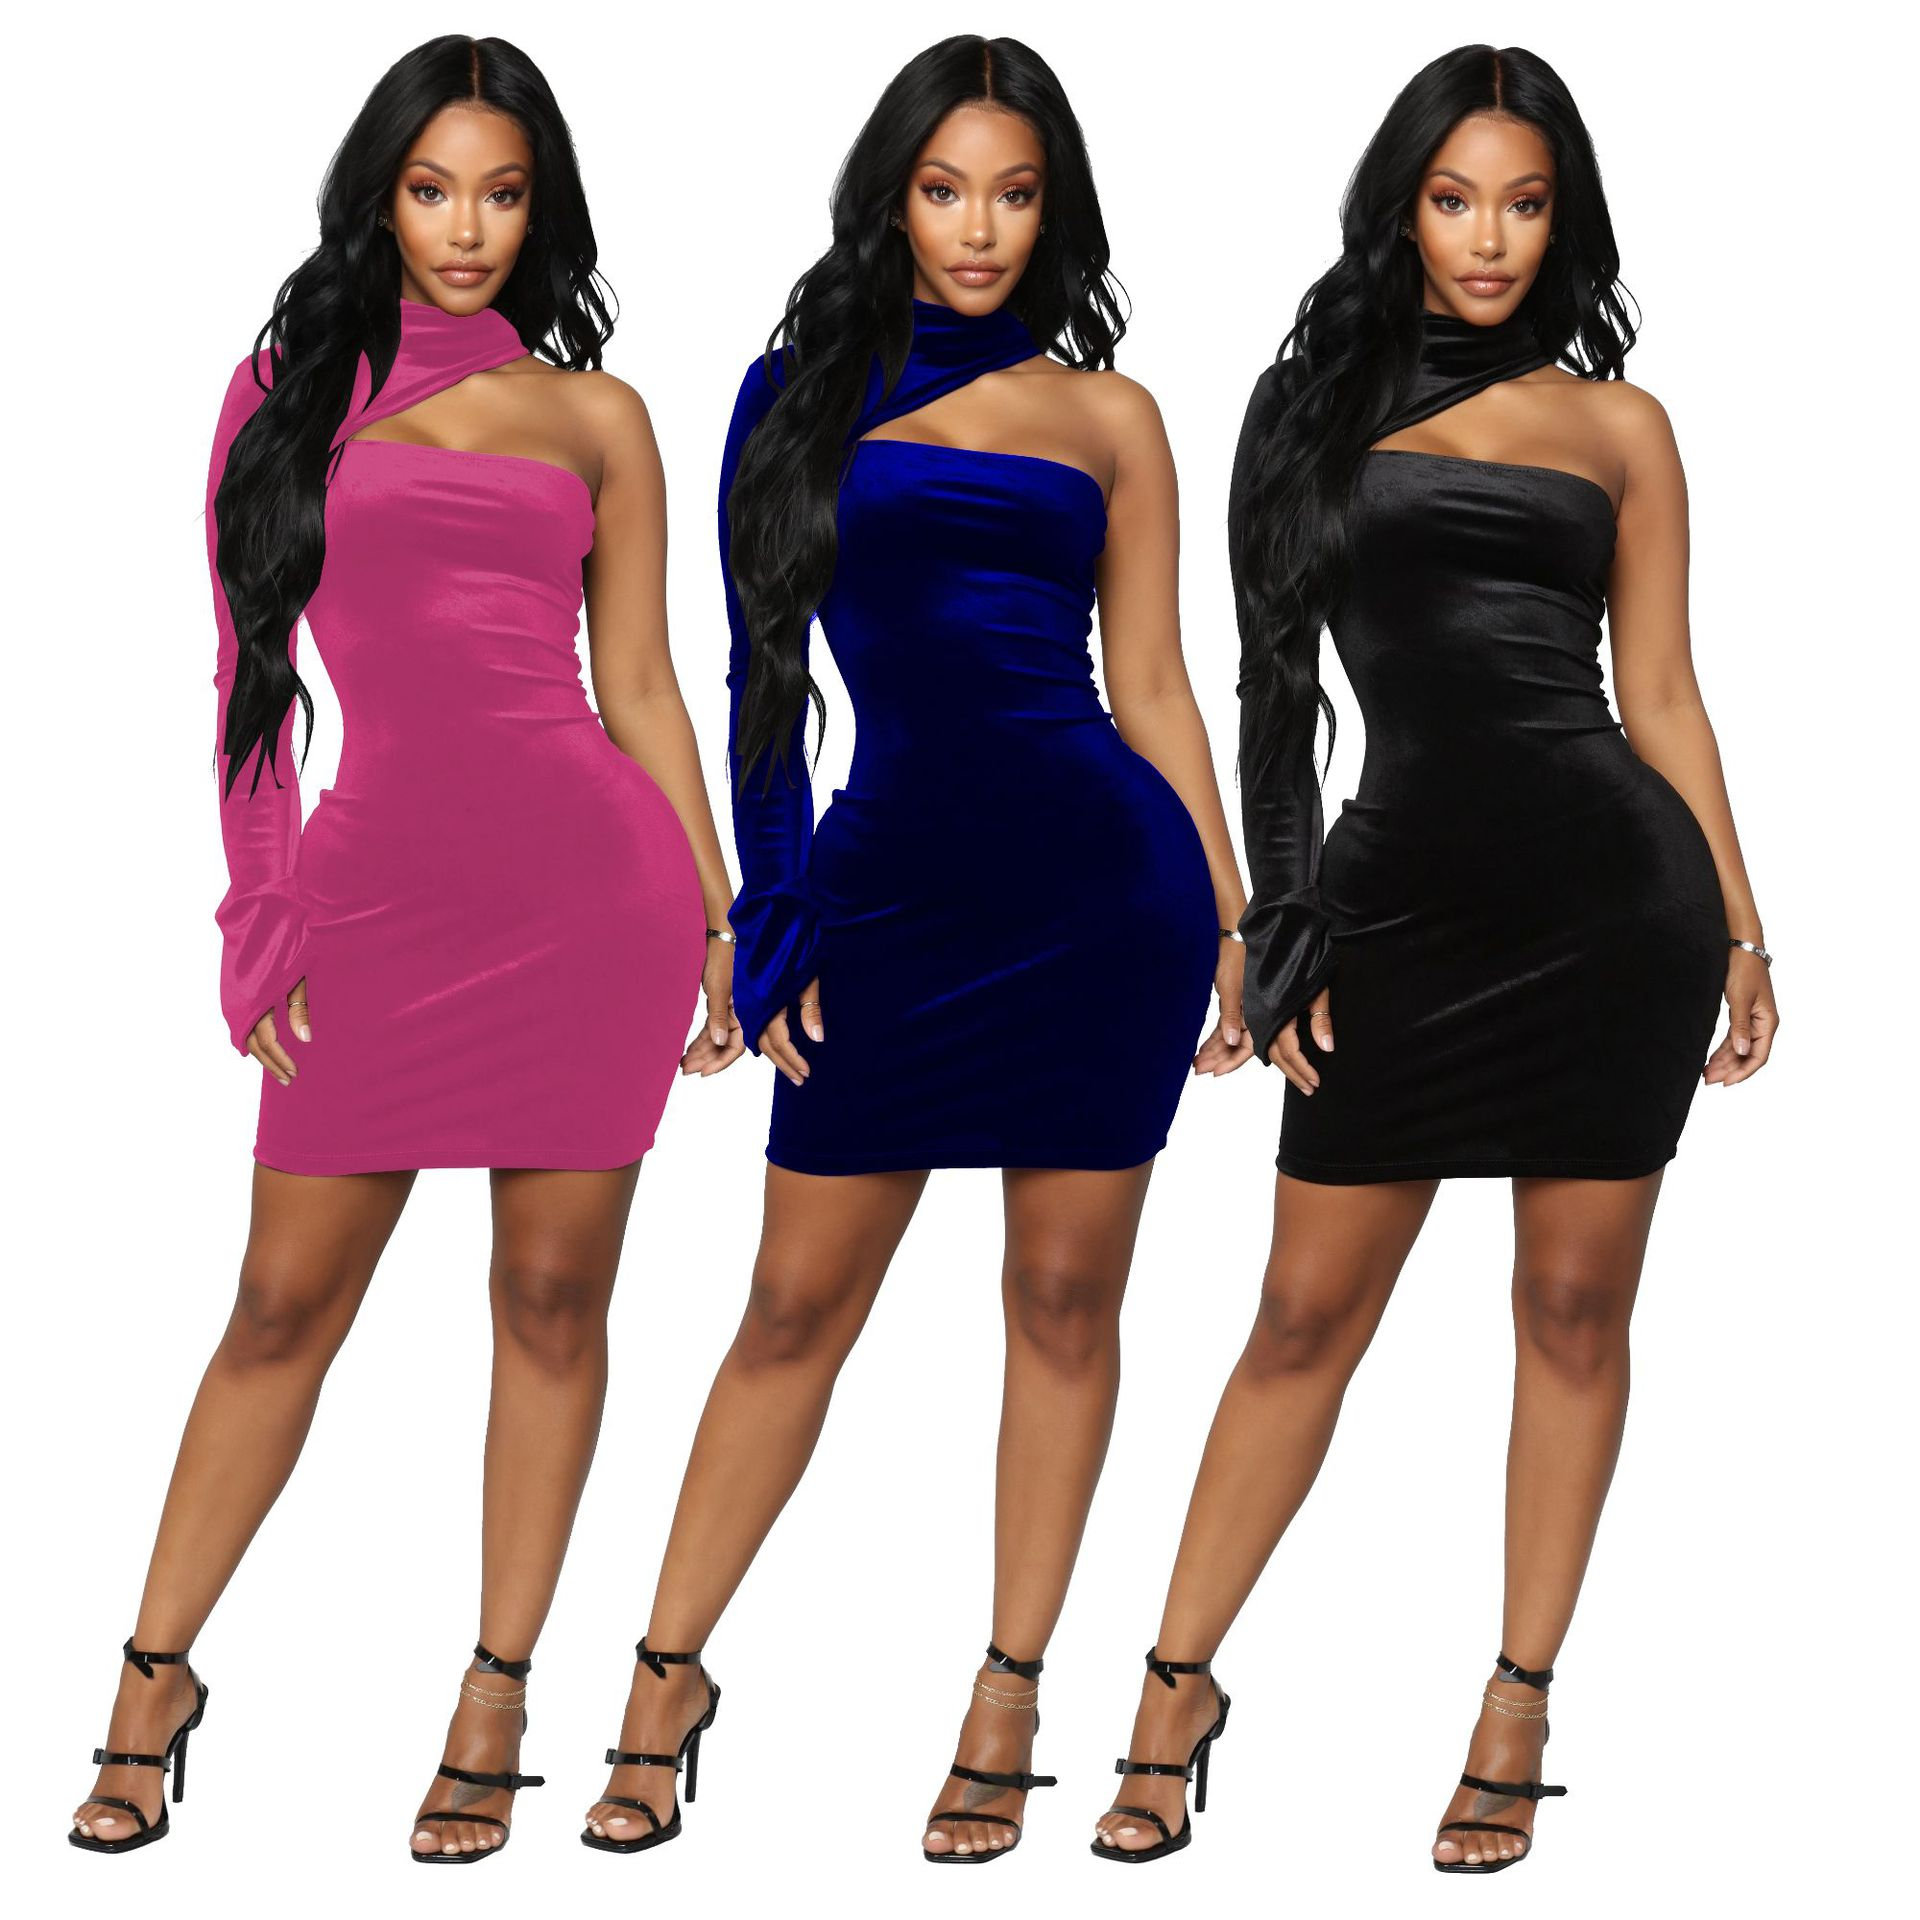 US  12.48 - Women One Shoulder Bodycon Solid Color Velvet Club Party  Evening Mini Dress - www.trystbeautiful.com 854f4062af